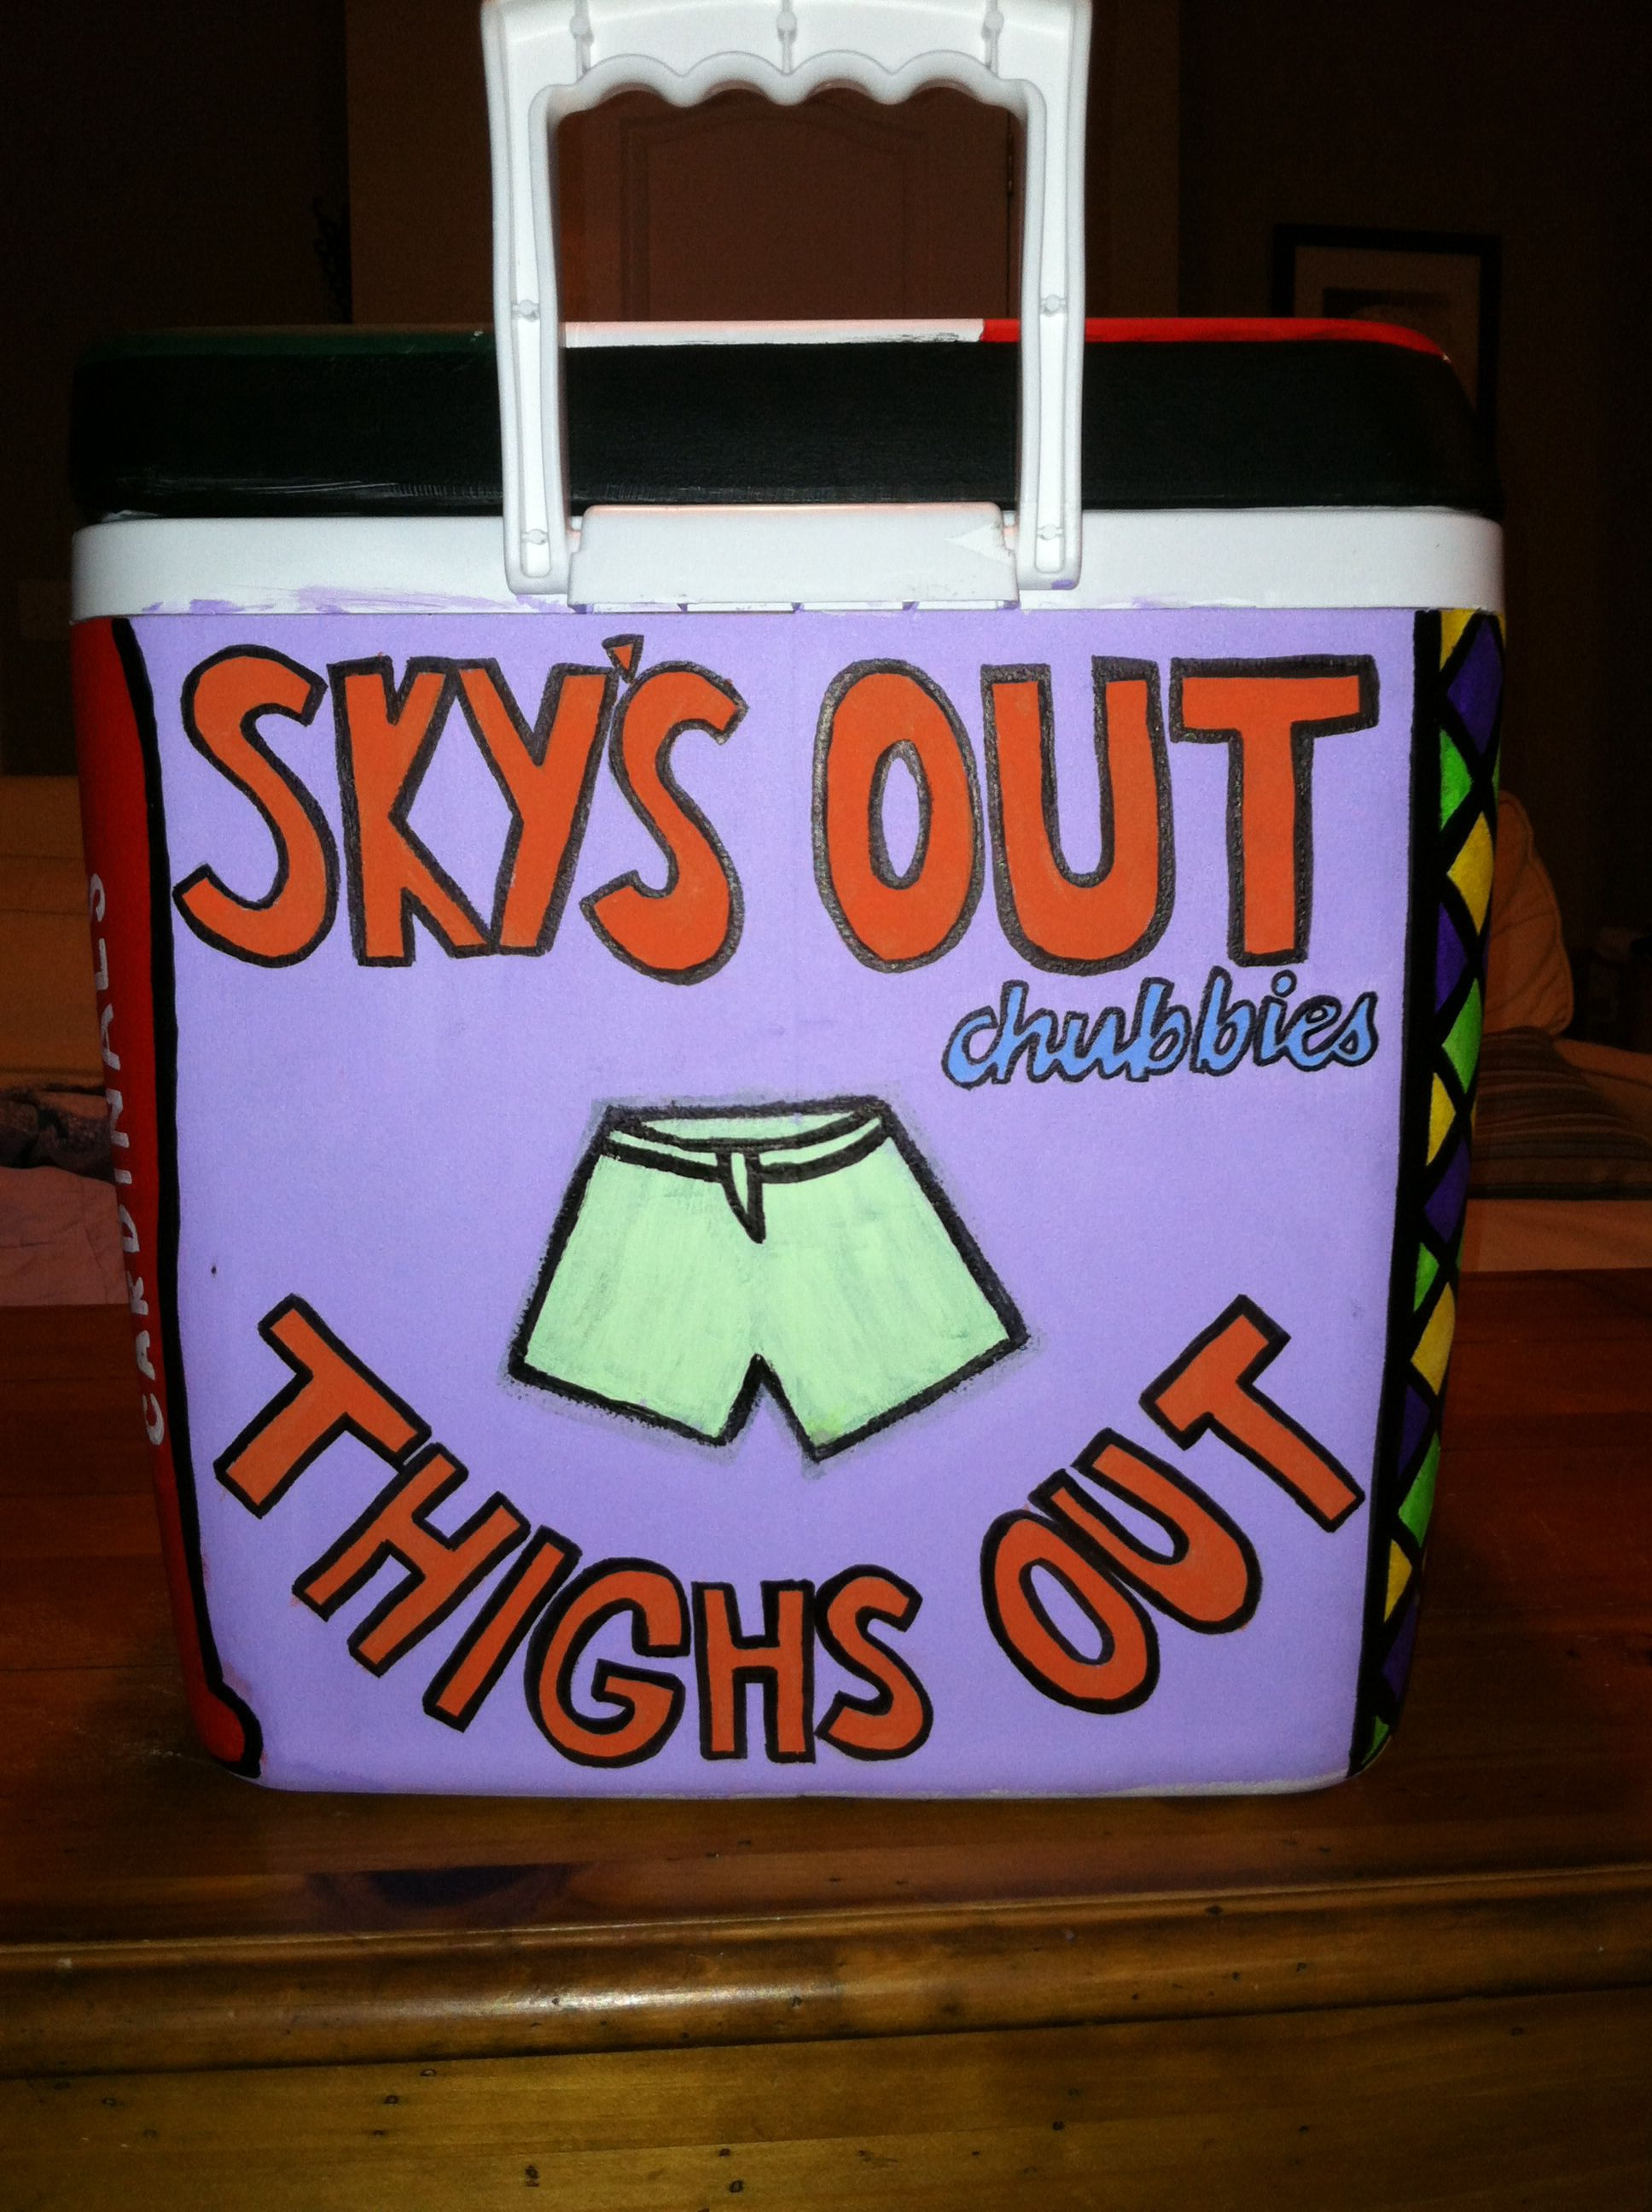 "Chubbies ""Sky's out thighs out"" painted cooler"